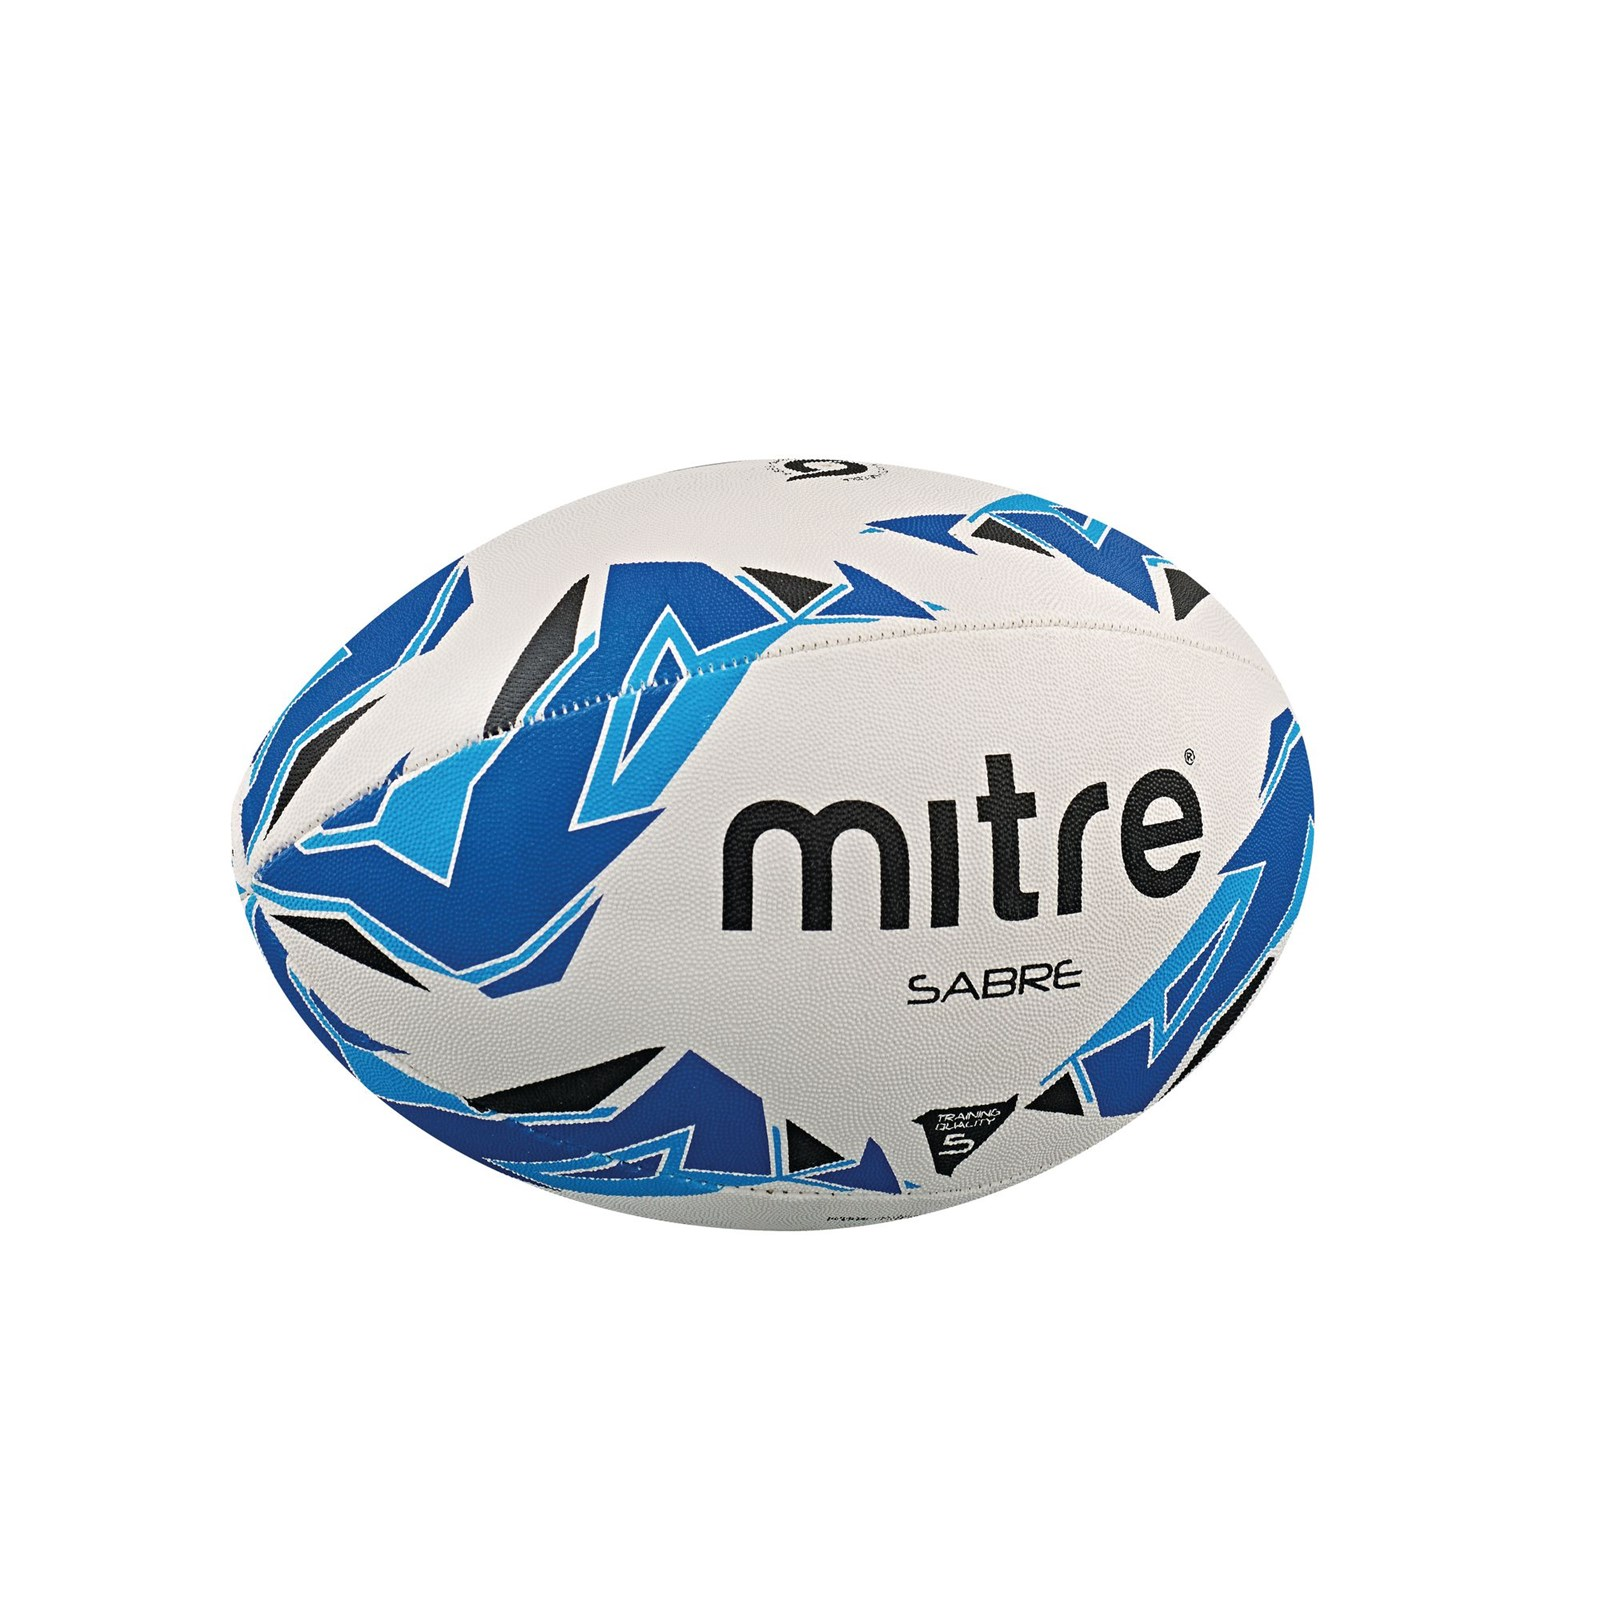 Mitre Sabre Rugby Ball - Size 3